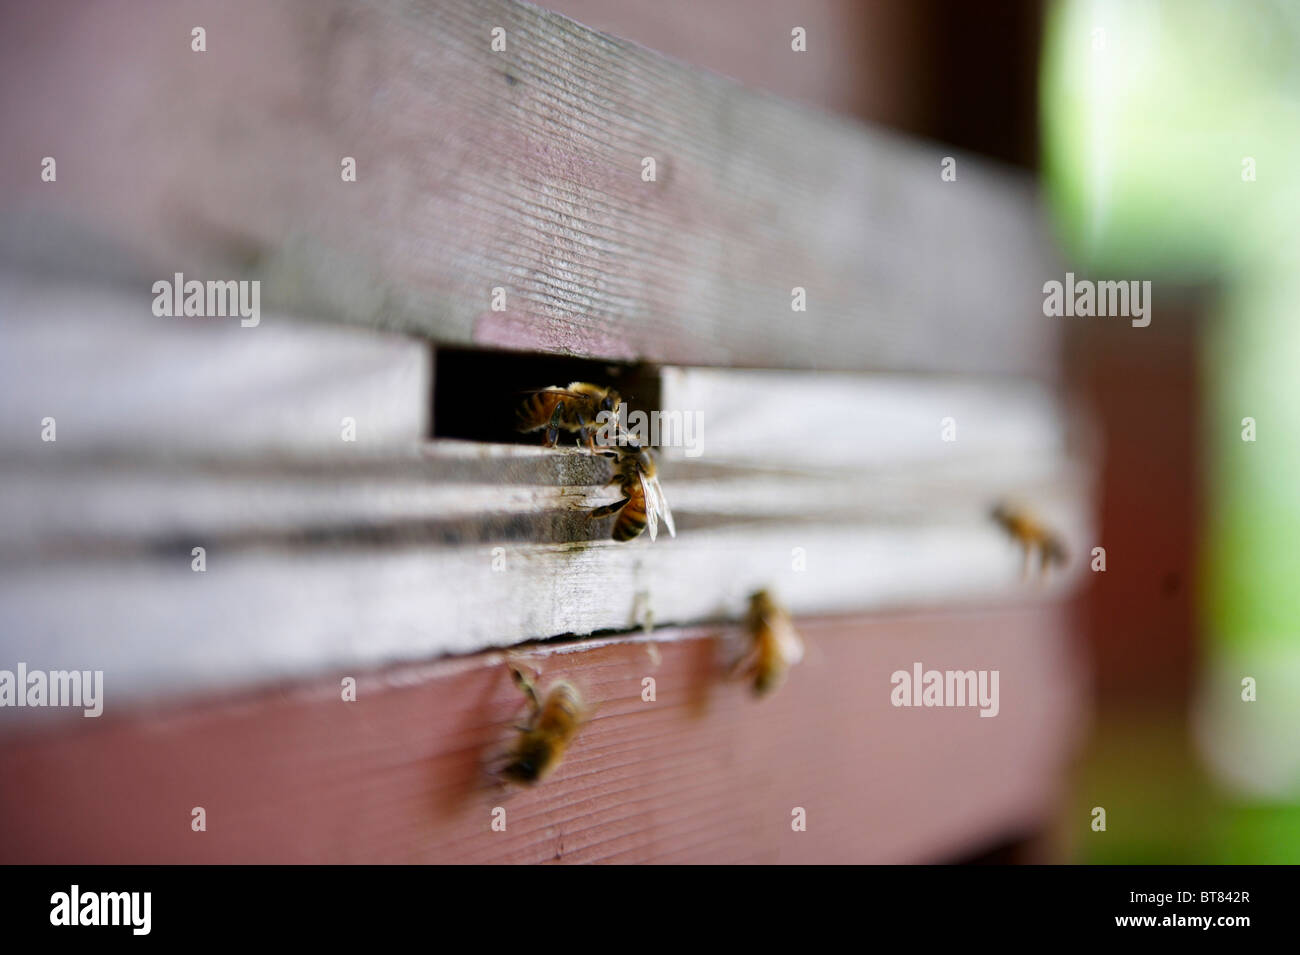 2 honey bees at entrance to a beehive - Stock Image